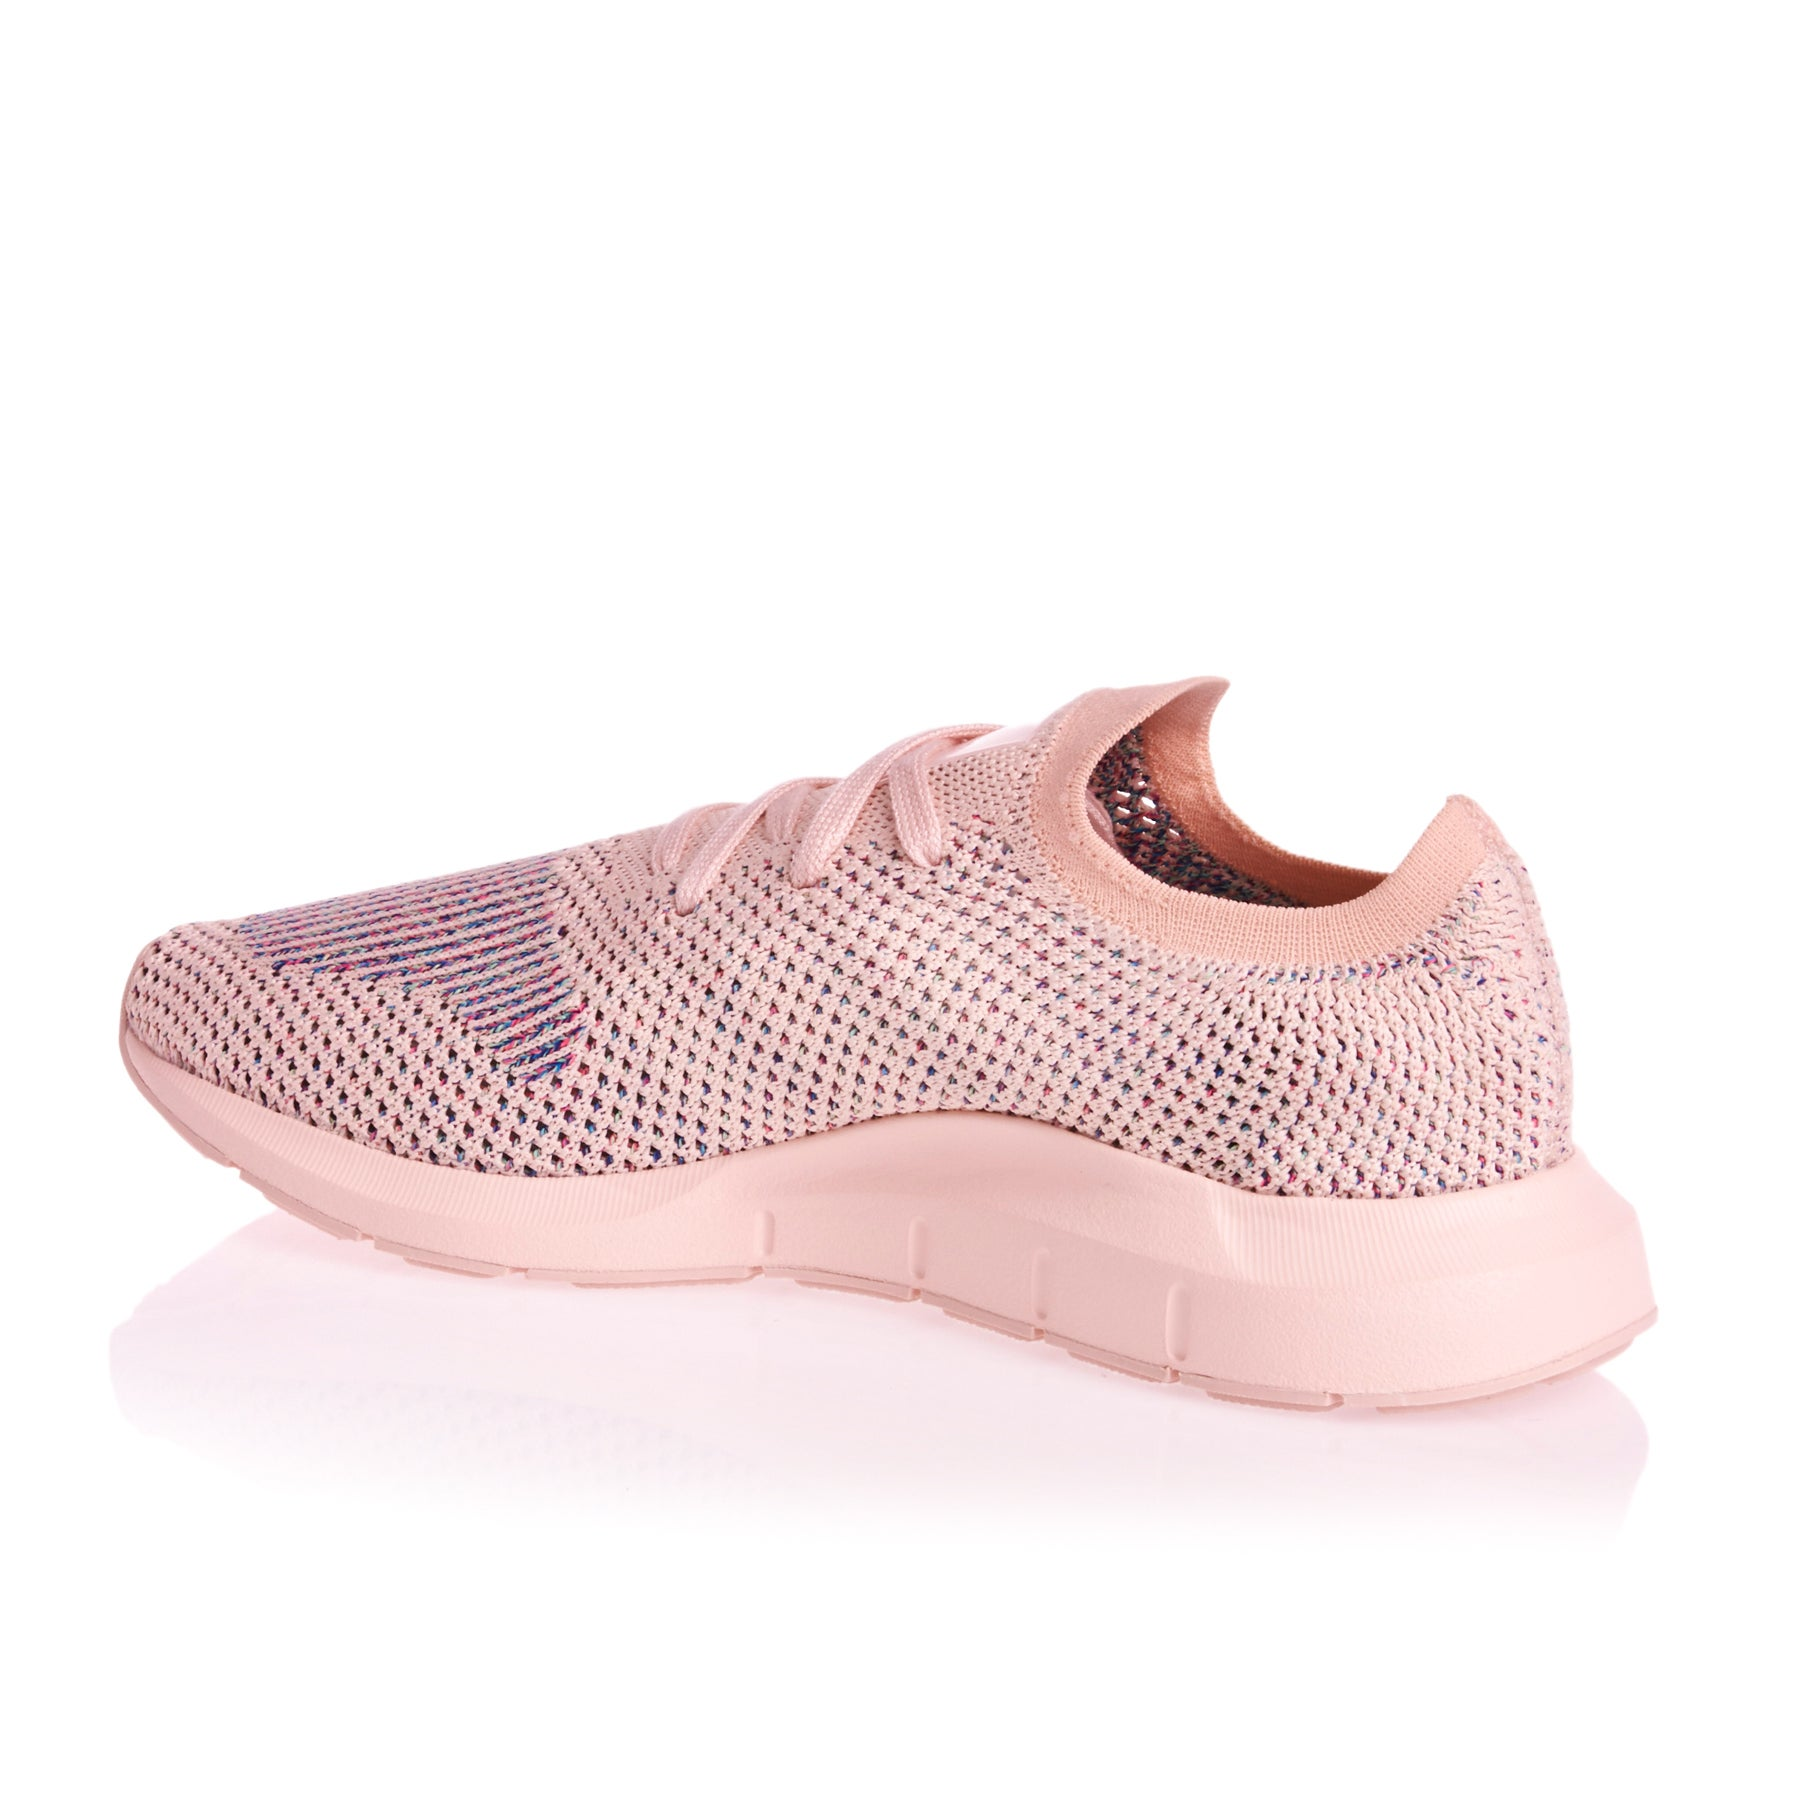 09117a8c7 Adidas Originals Swift Run Primeknit Womens Shoes available from ...